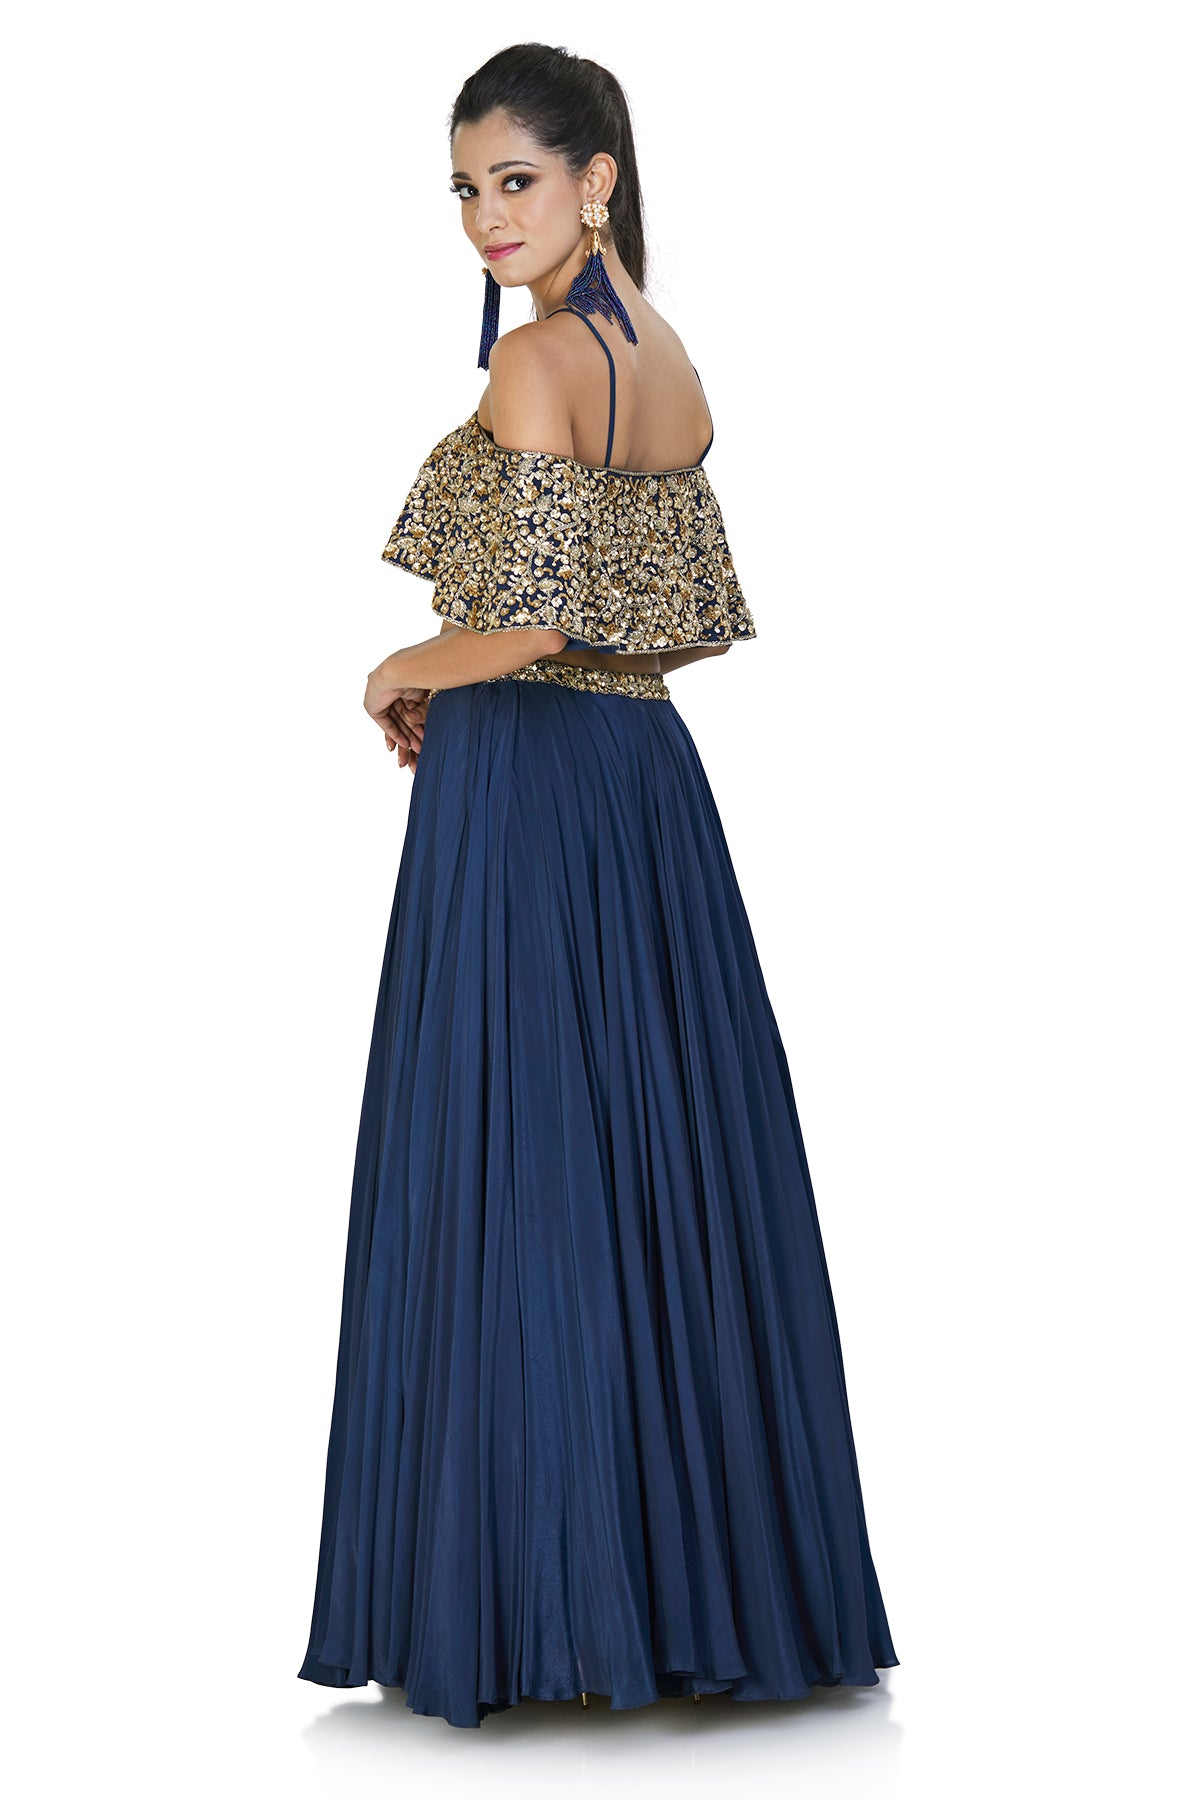 Embellished navy blue crop top and skirt